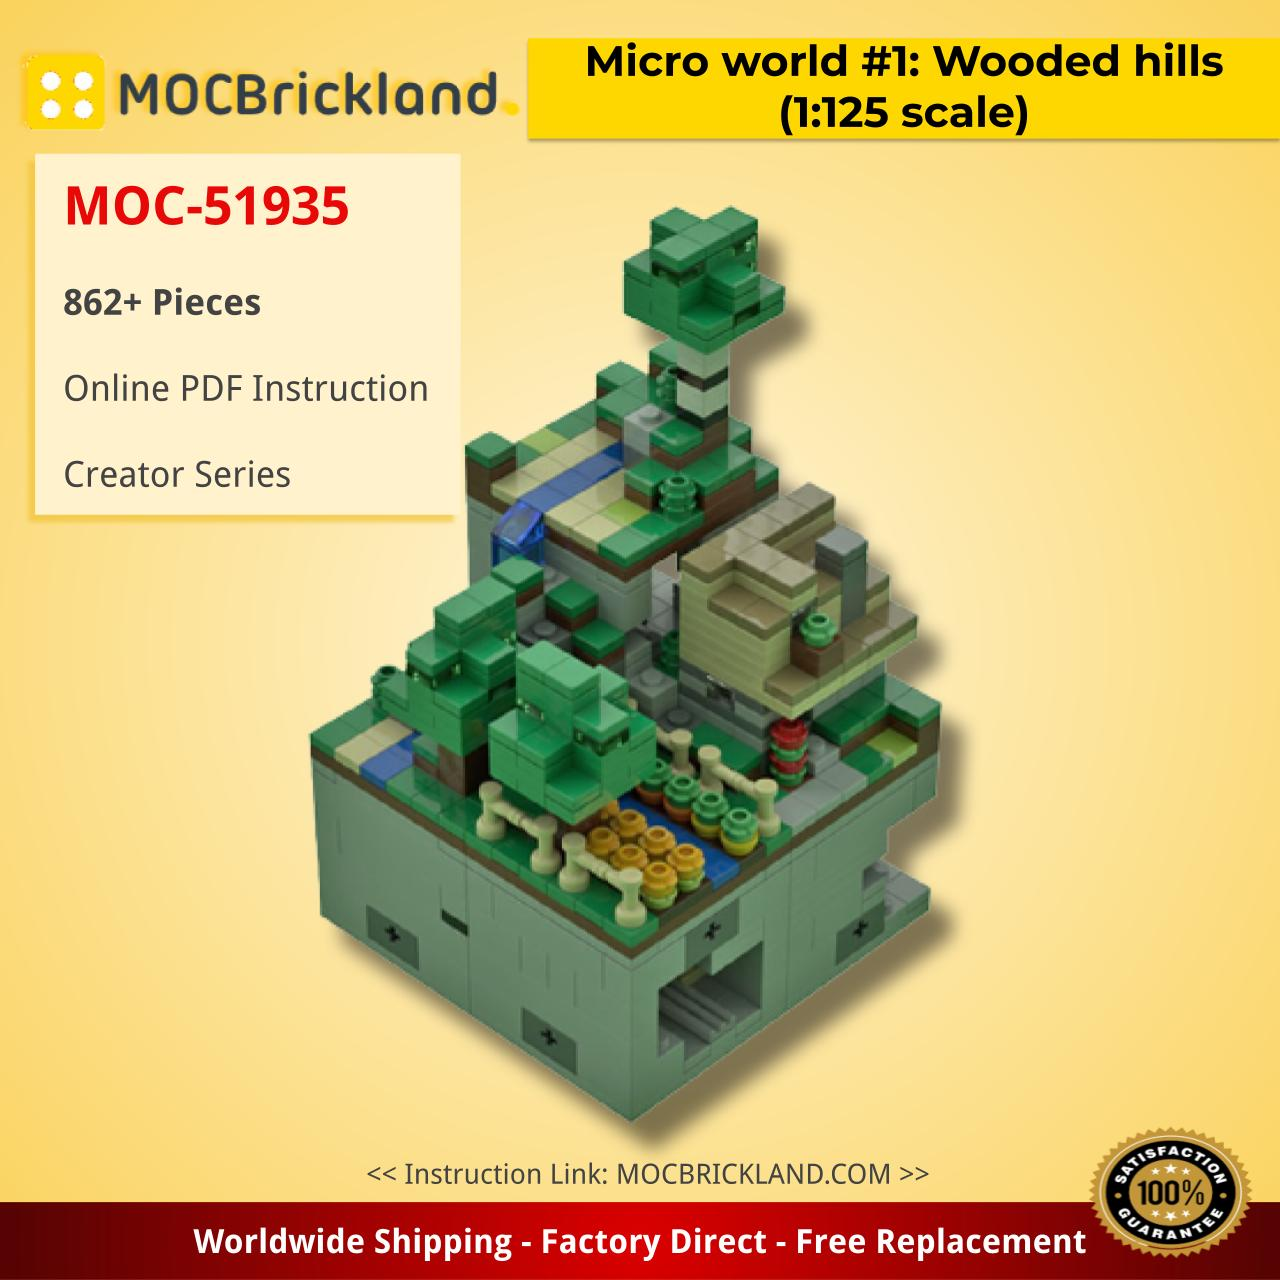 Micro world #1: Wooded hills (1:125 scale) Creator MOC-51935 by Mobilbenja WITH 862 PIECES